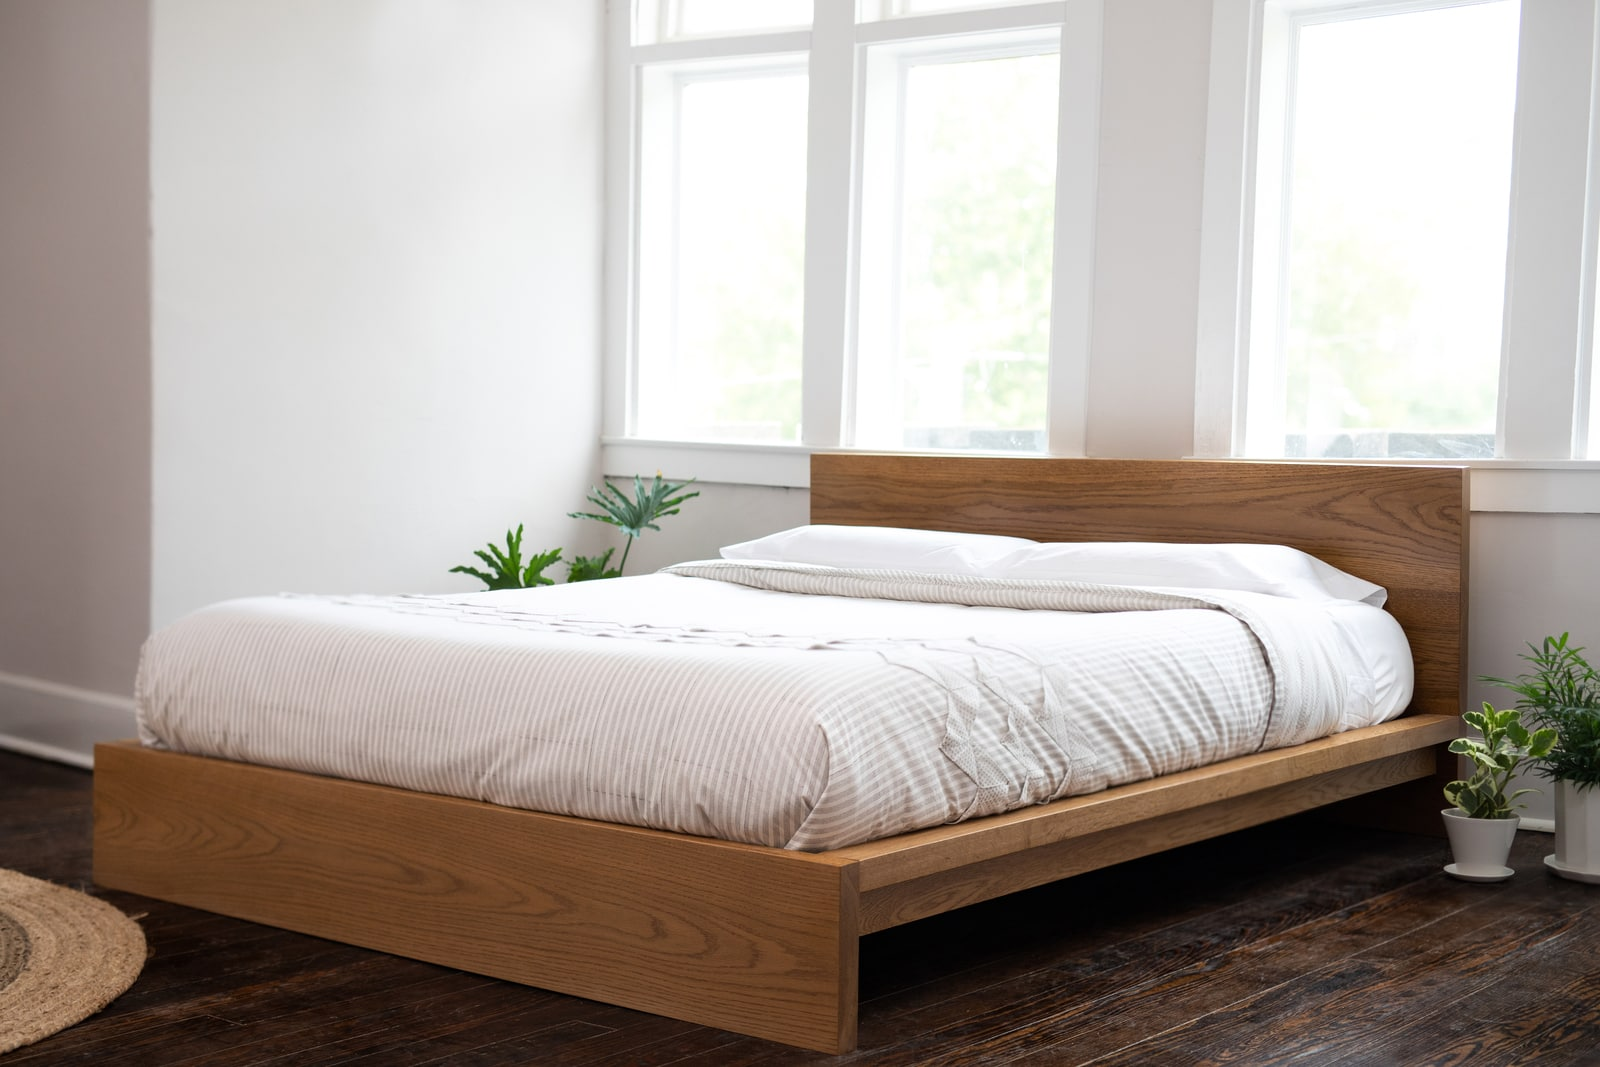 The Hayley Bed by Unruh